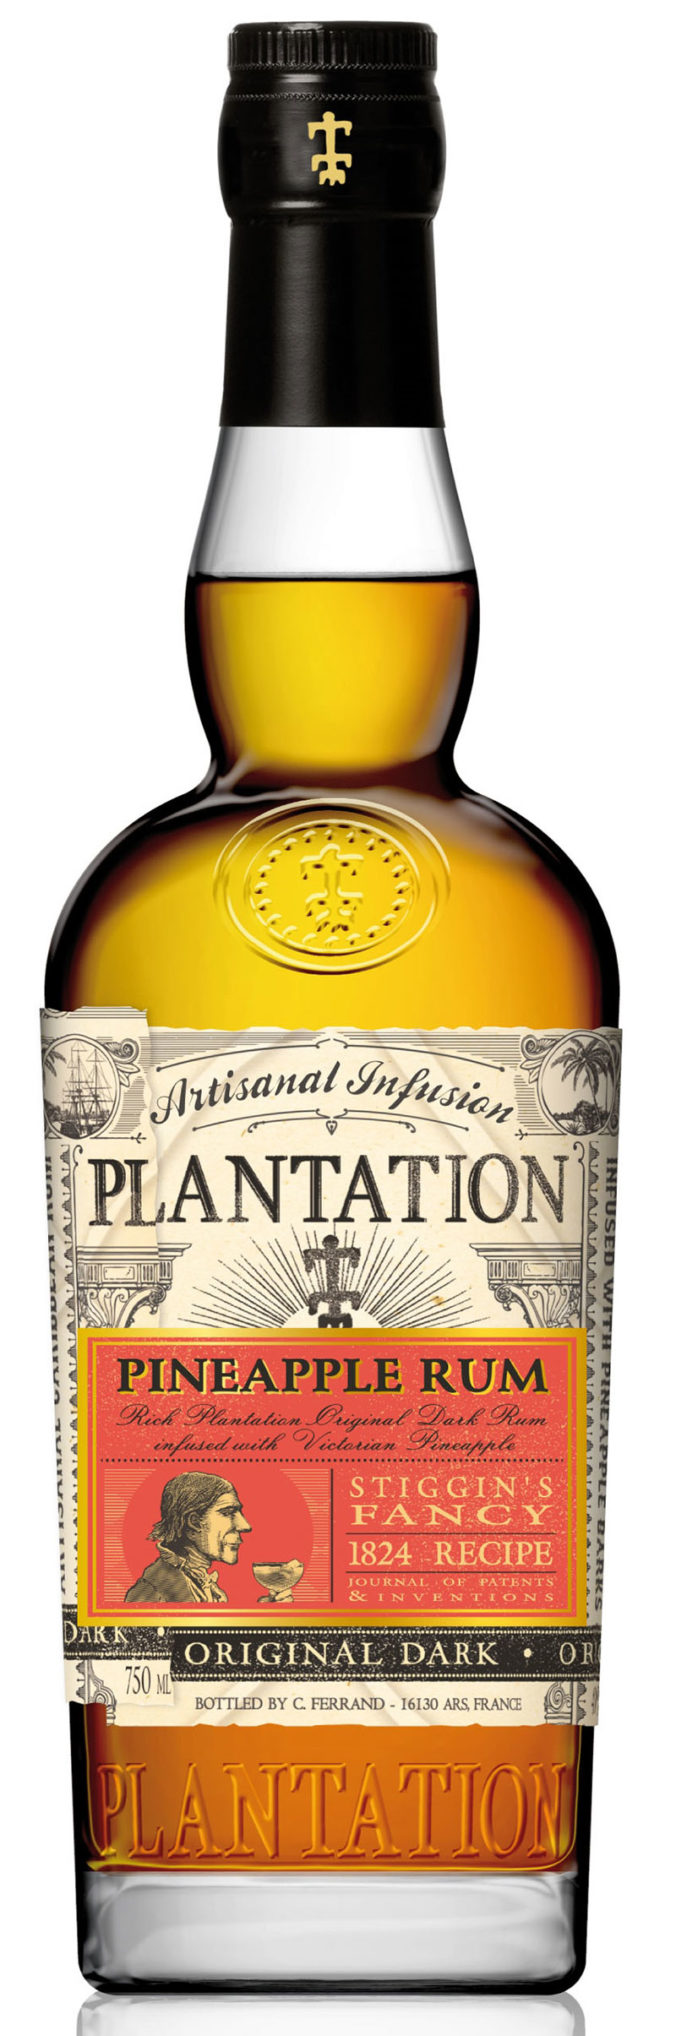 Plantation Stiggin's Fancy Pineapple Original Dark Rum is a delightful artisanal infusion of pineapple fruit and skins; a blend of light and dark overproof rums that delivers authentic pineapple flavor.